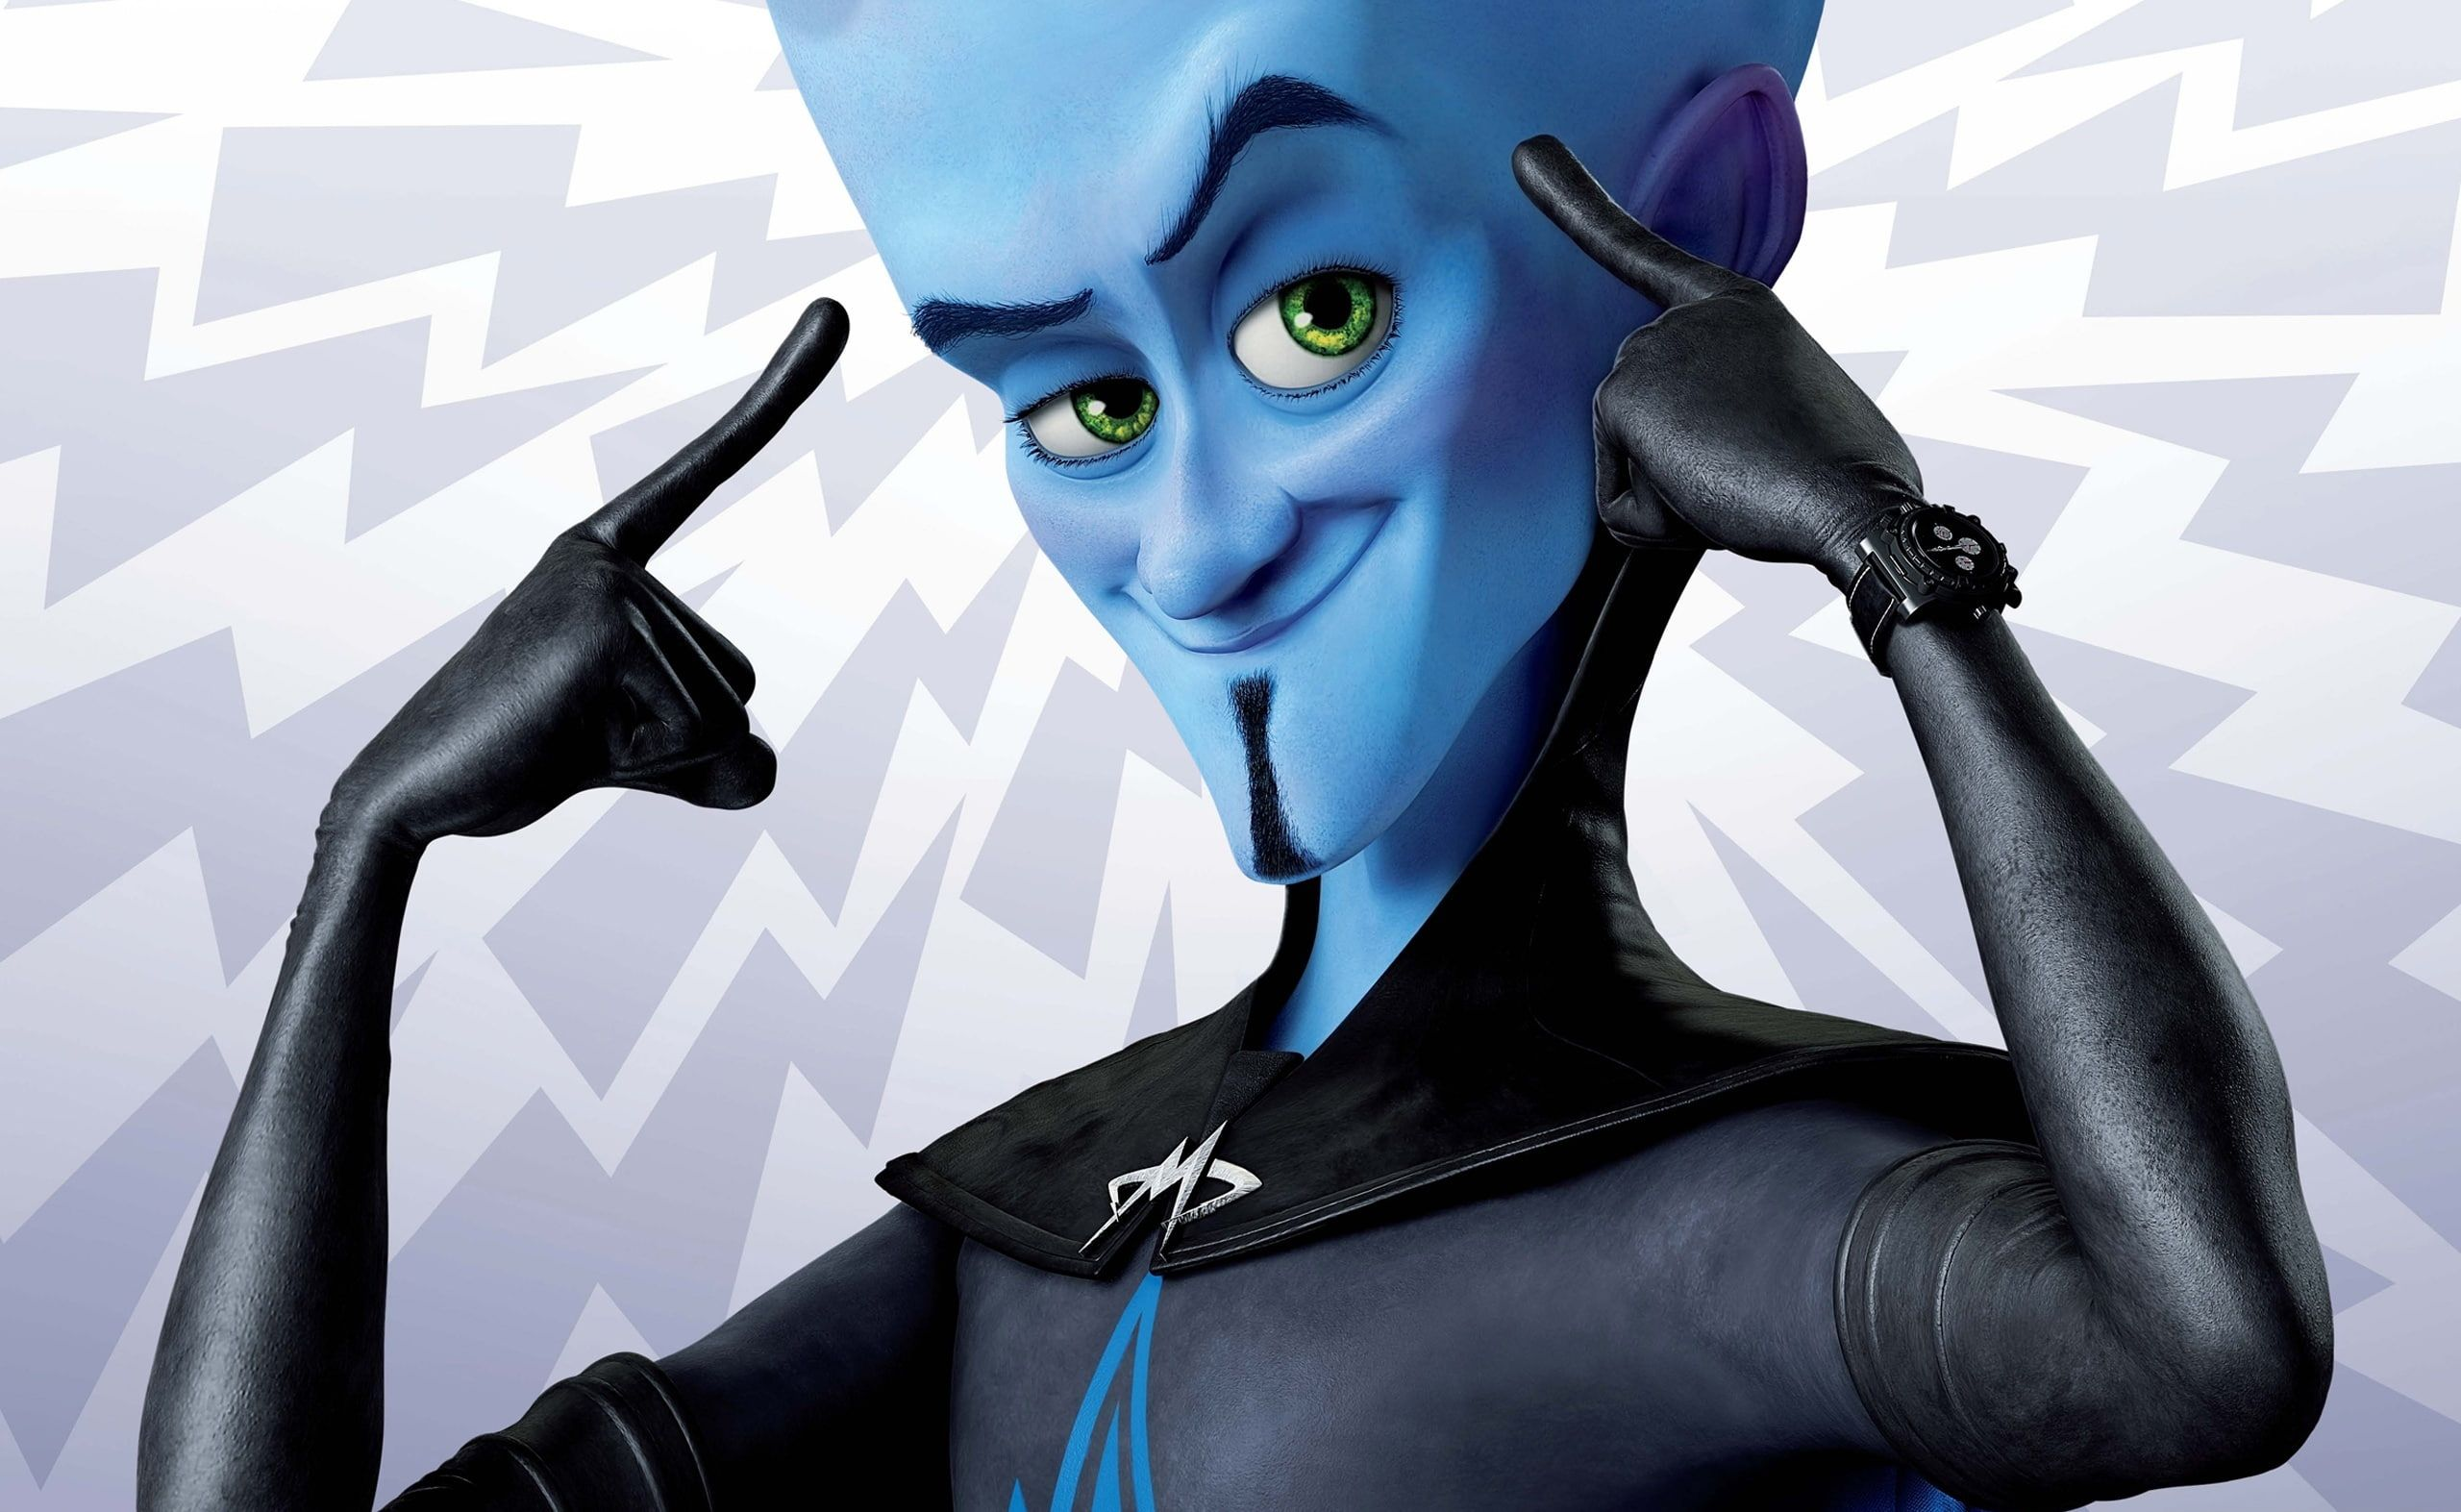 Will Ferrell As Megamind Megamind Character Cartoons Others Megamind Will Ferrell As Megamind Superhero Mo Megamind Characters Superhero Movies Hero Poster